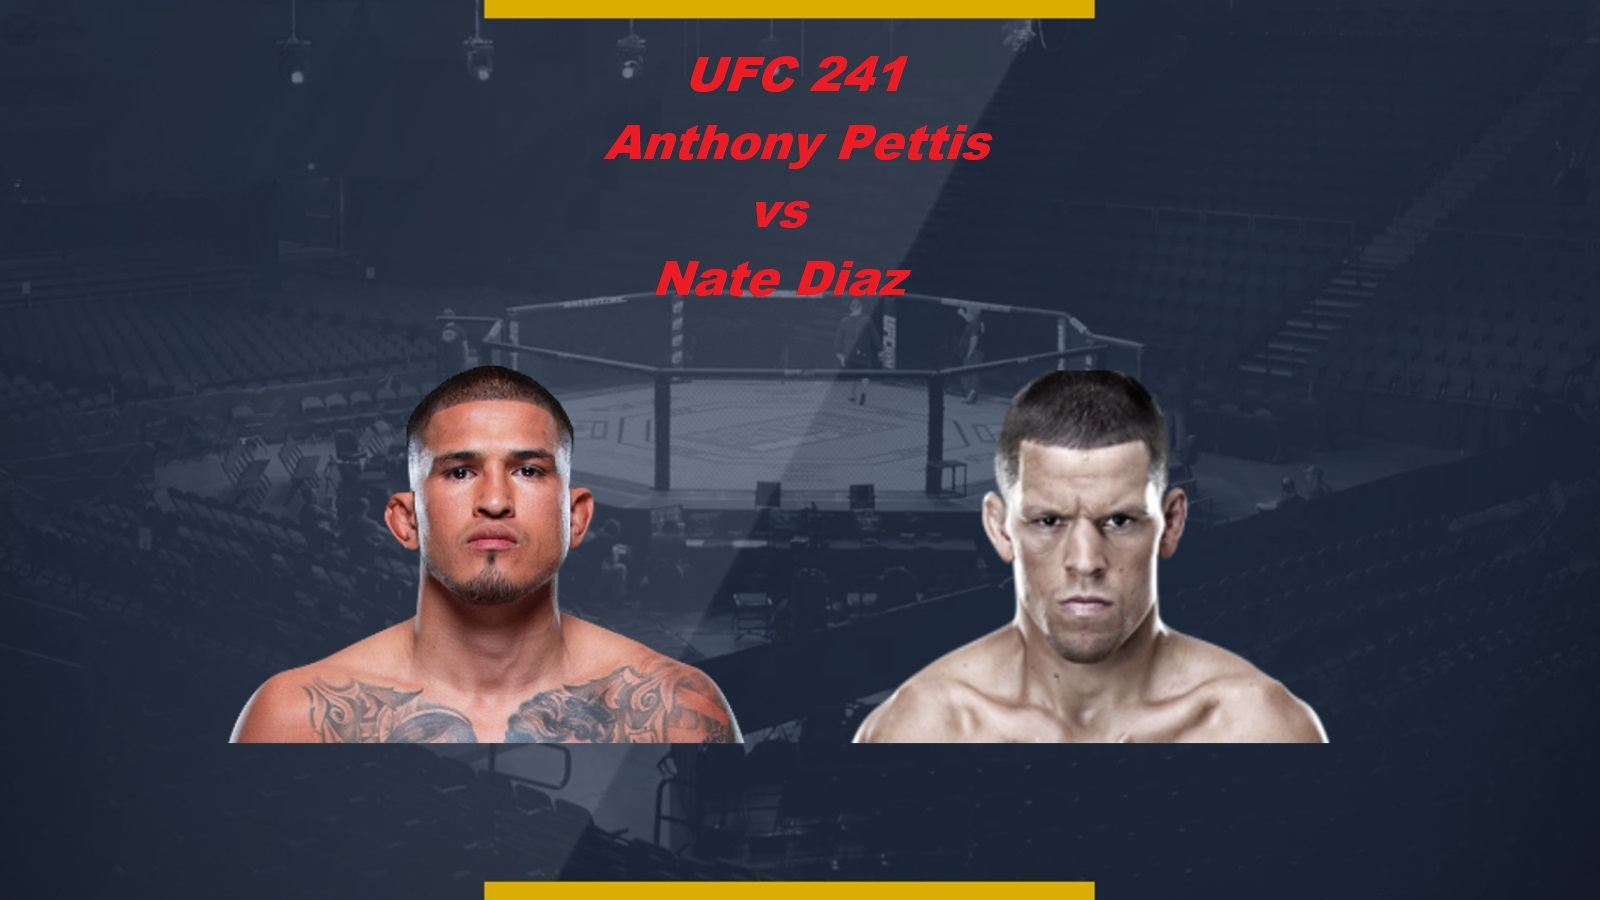 Anthony Pettis vs Nate Diaz UFC 241 Fight Predictions And Picks